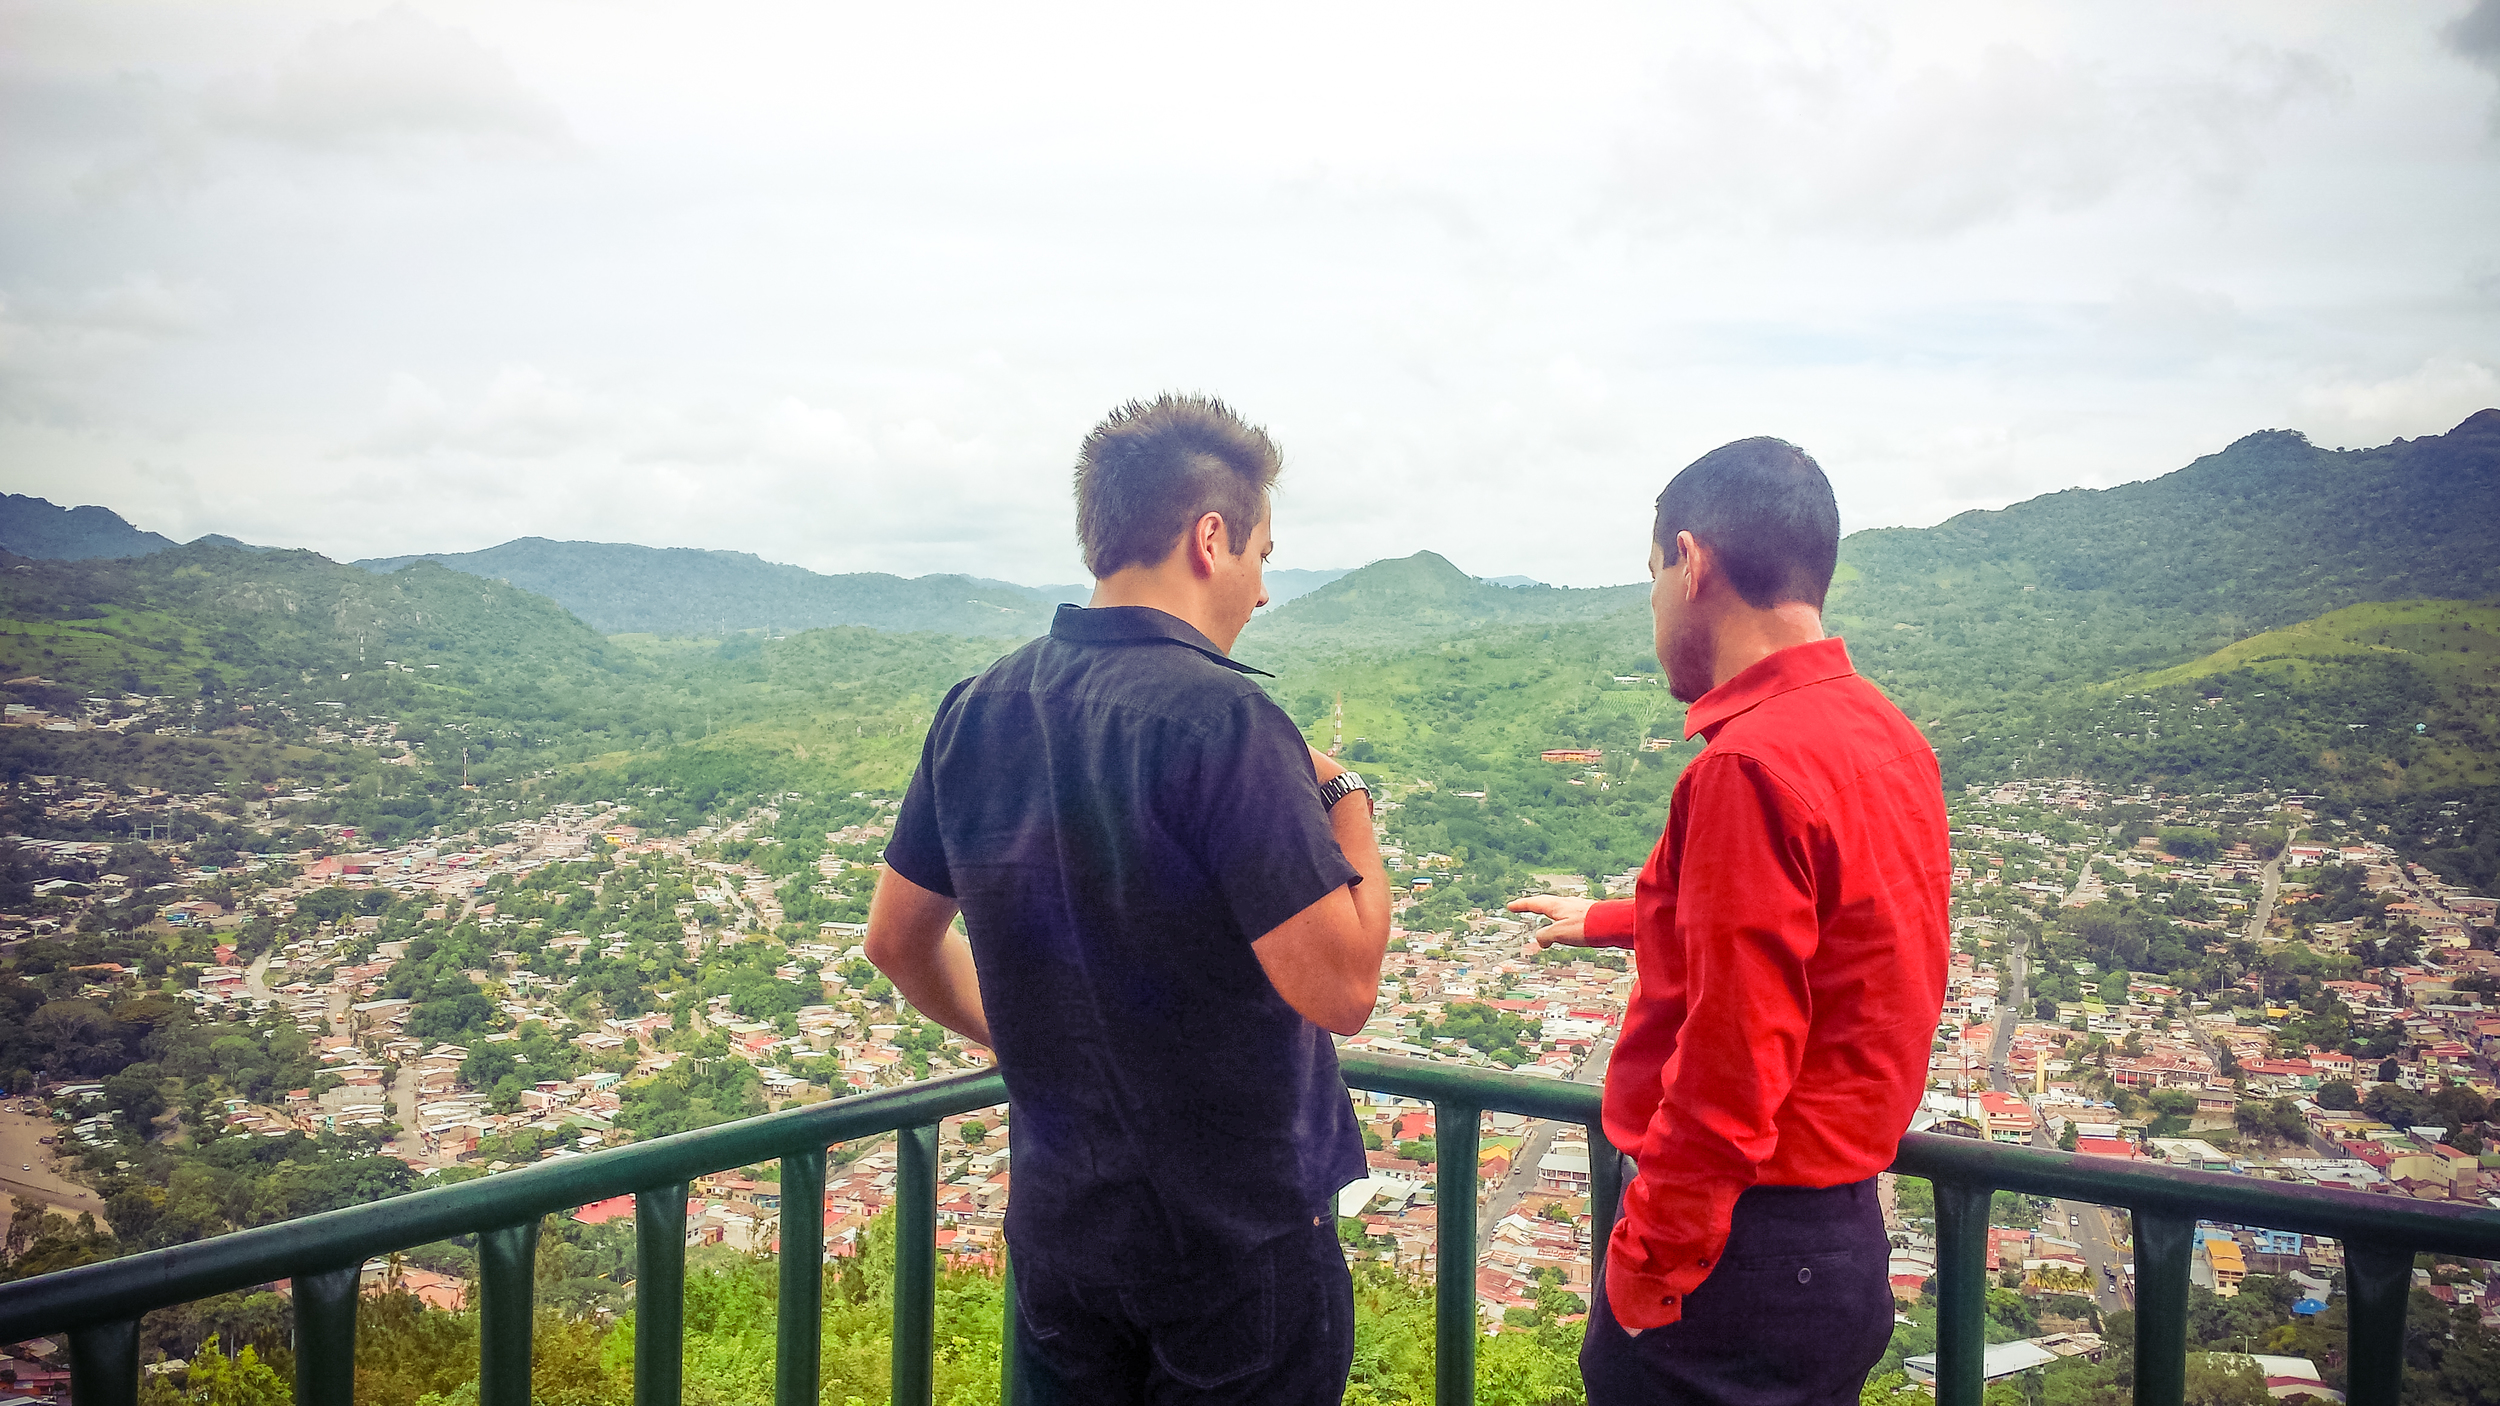 Alex practicing his spanish and Hector practicing his english as they converse about the Matagalpa view.